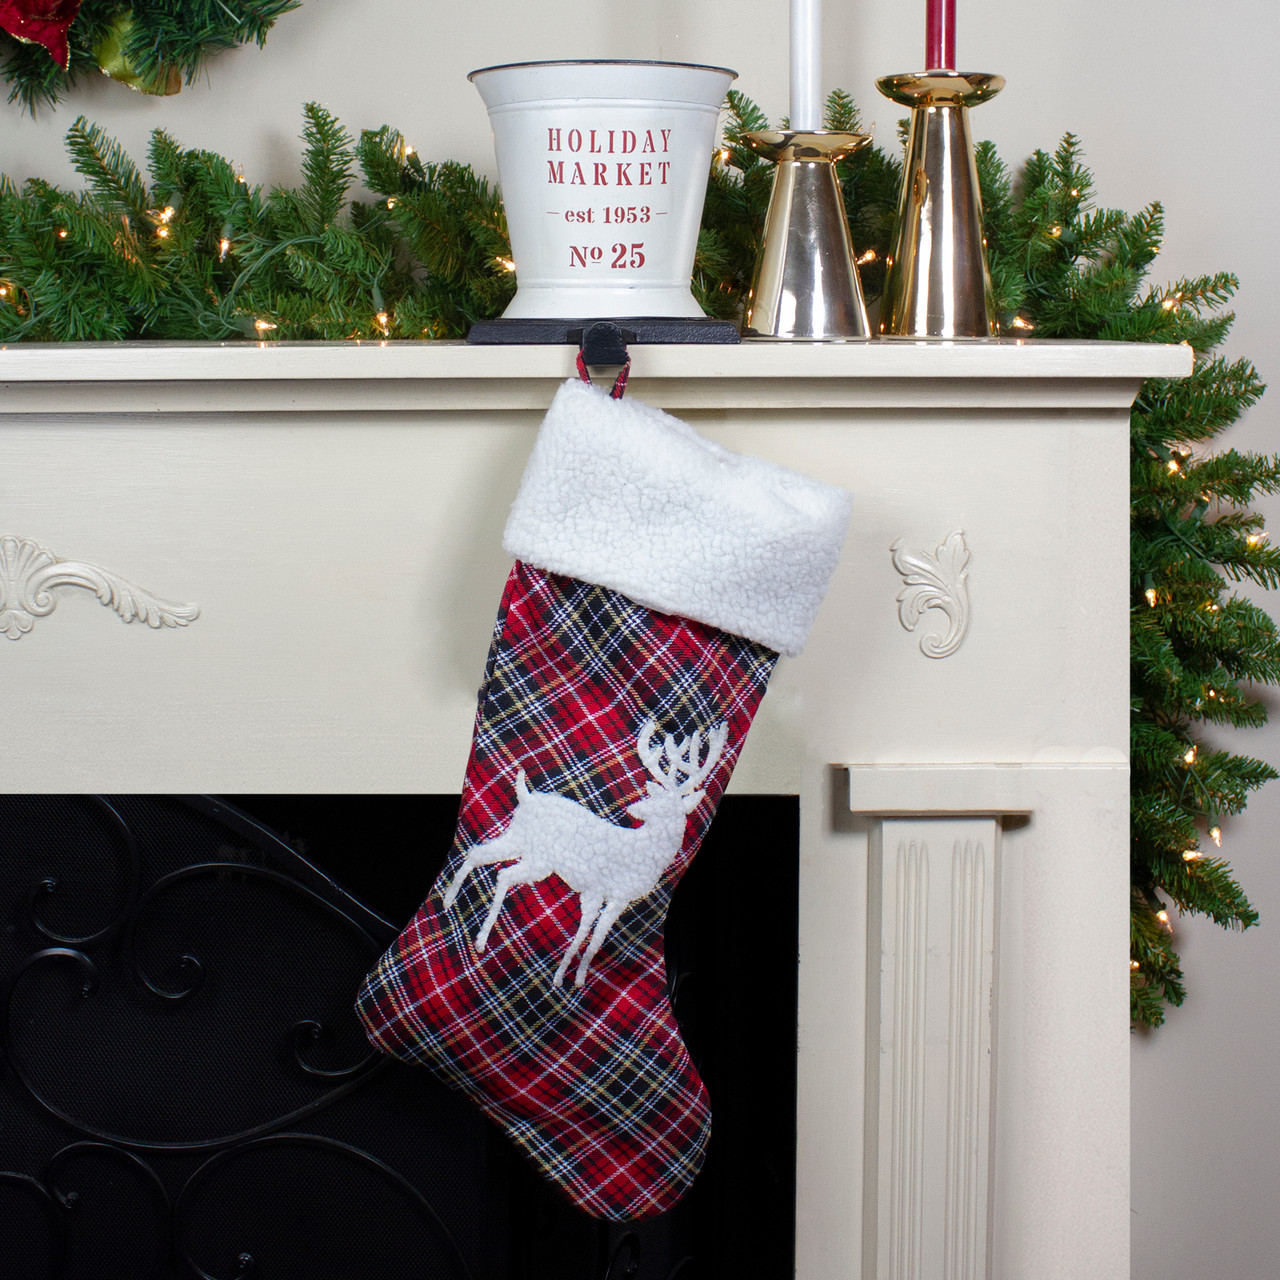 20 red white khaki and black plaid decorative christmas stocking with deer applique 32635937 - Black Christmas Stocking